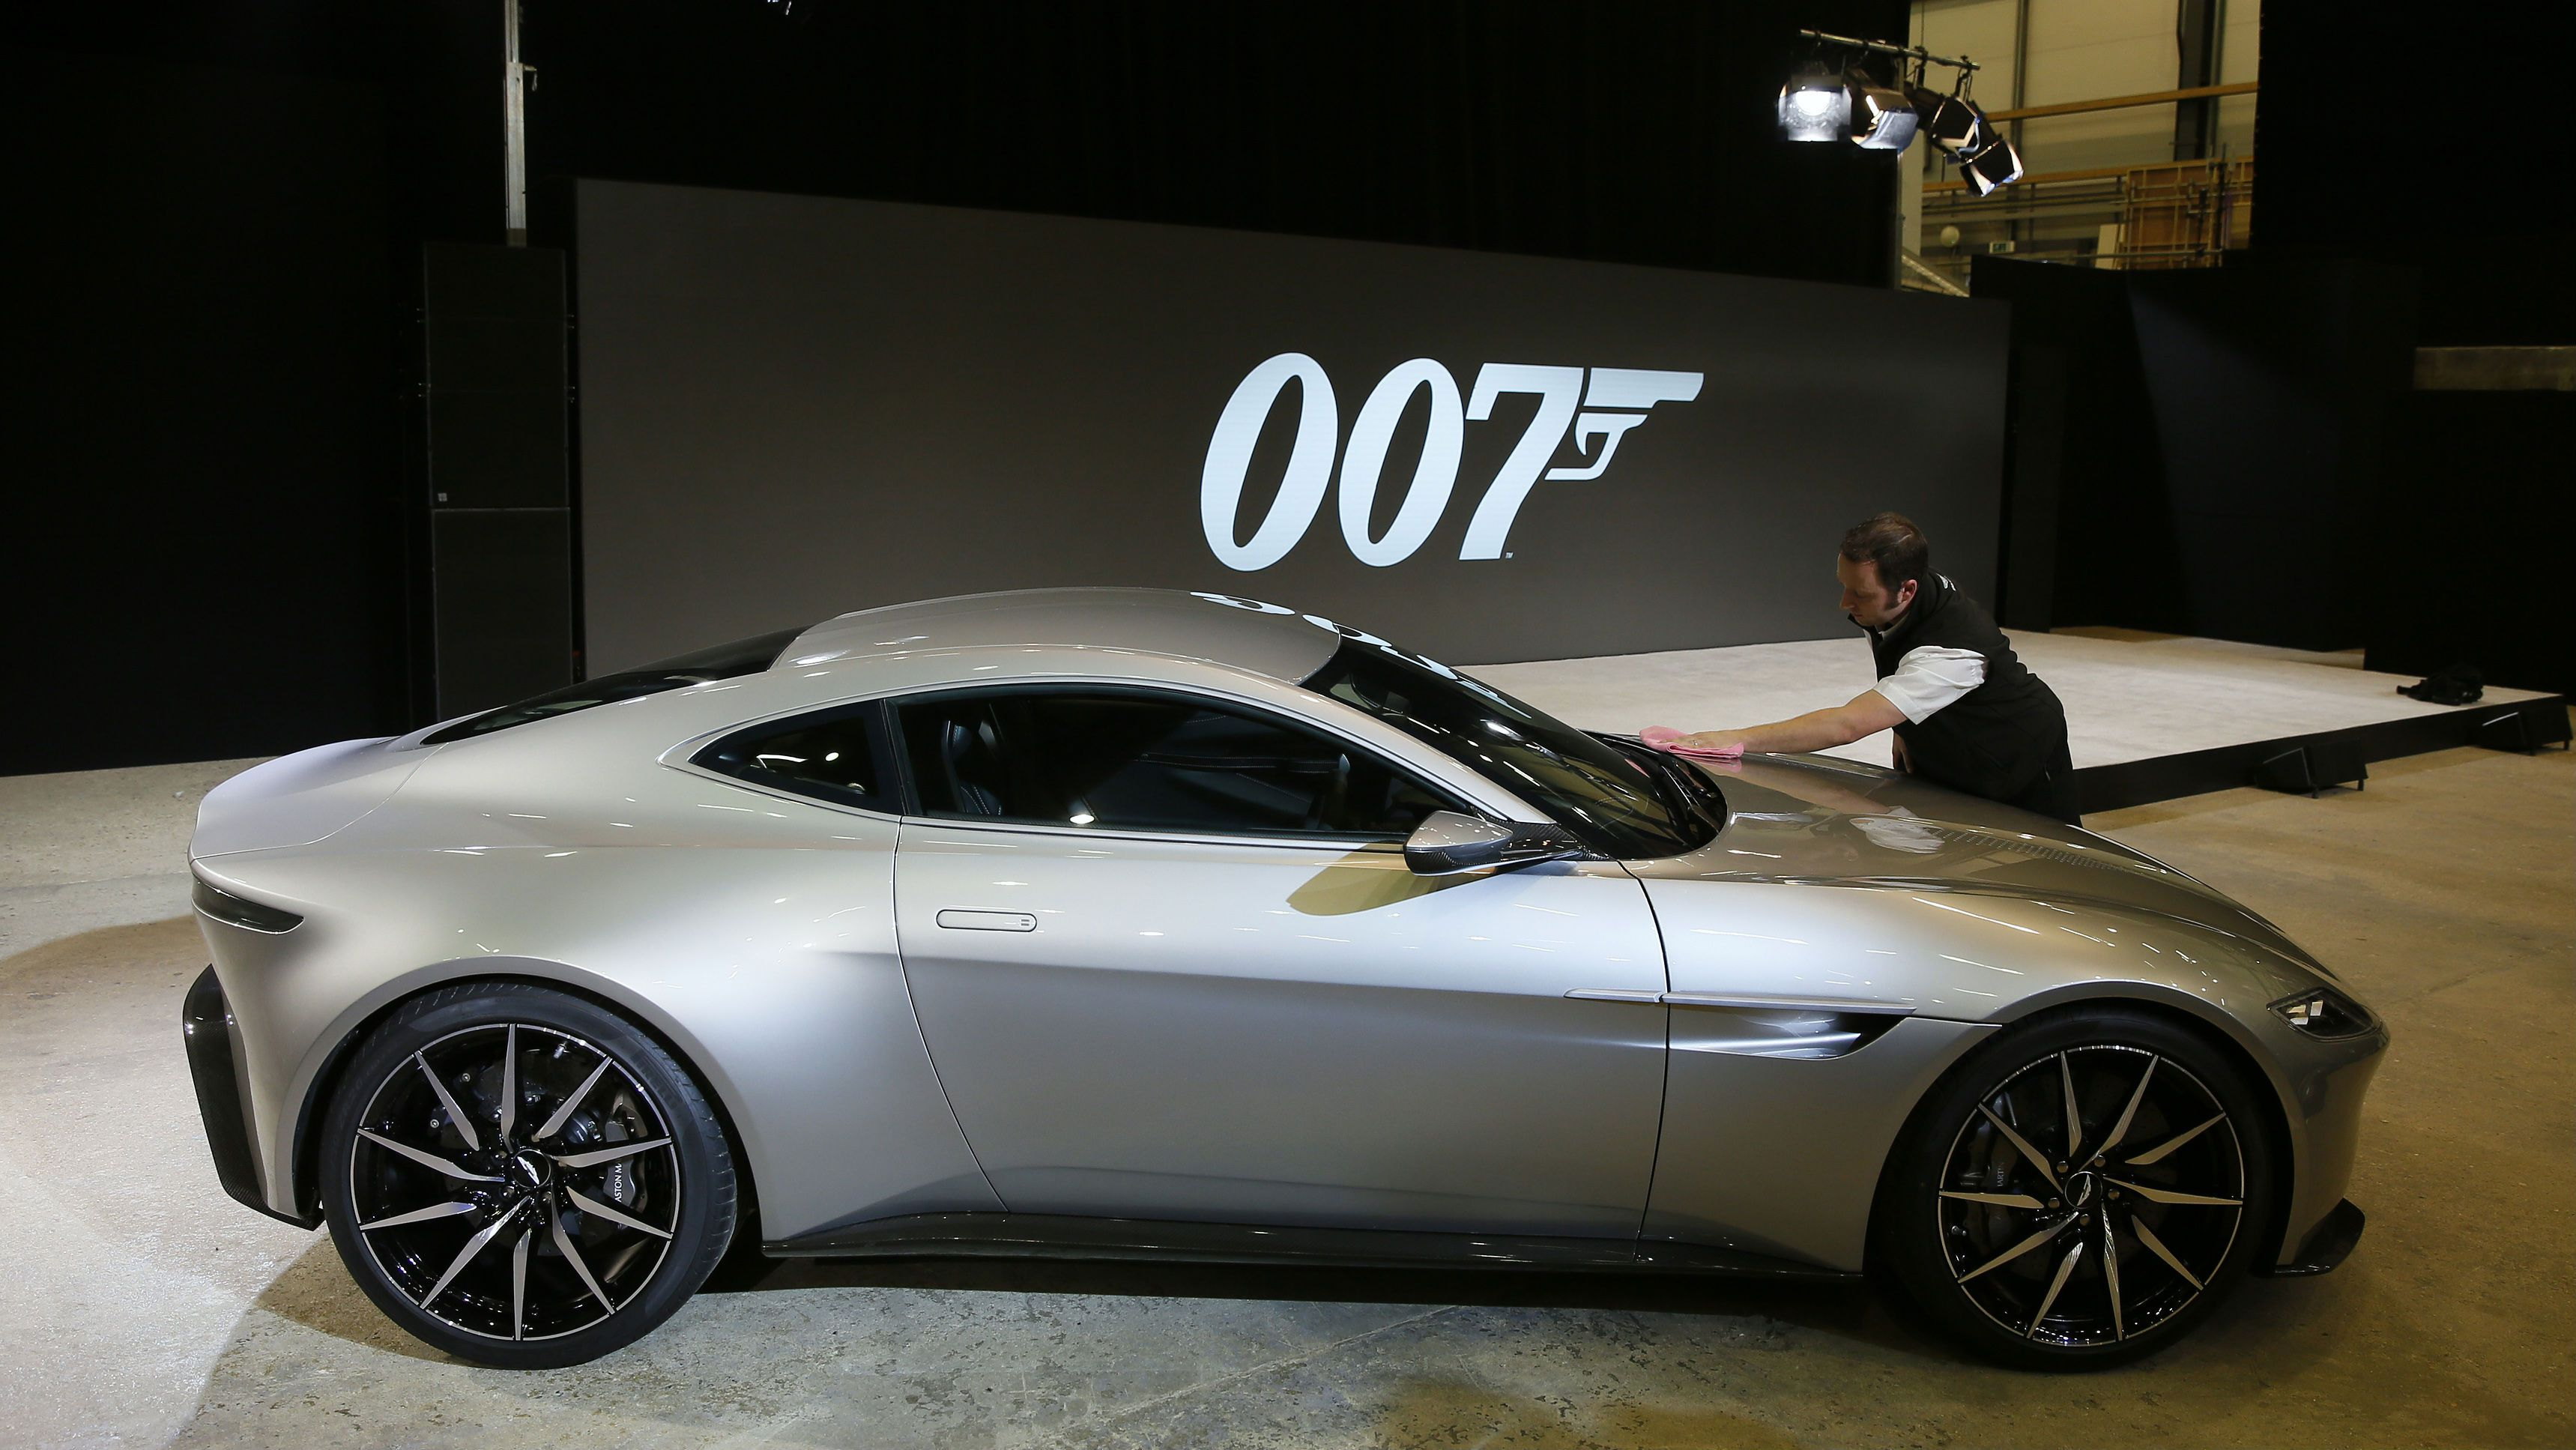 The Other Star Of The New James Bond Film Spectre The Aston